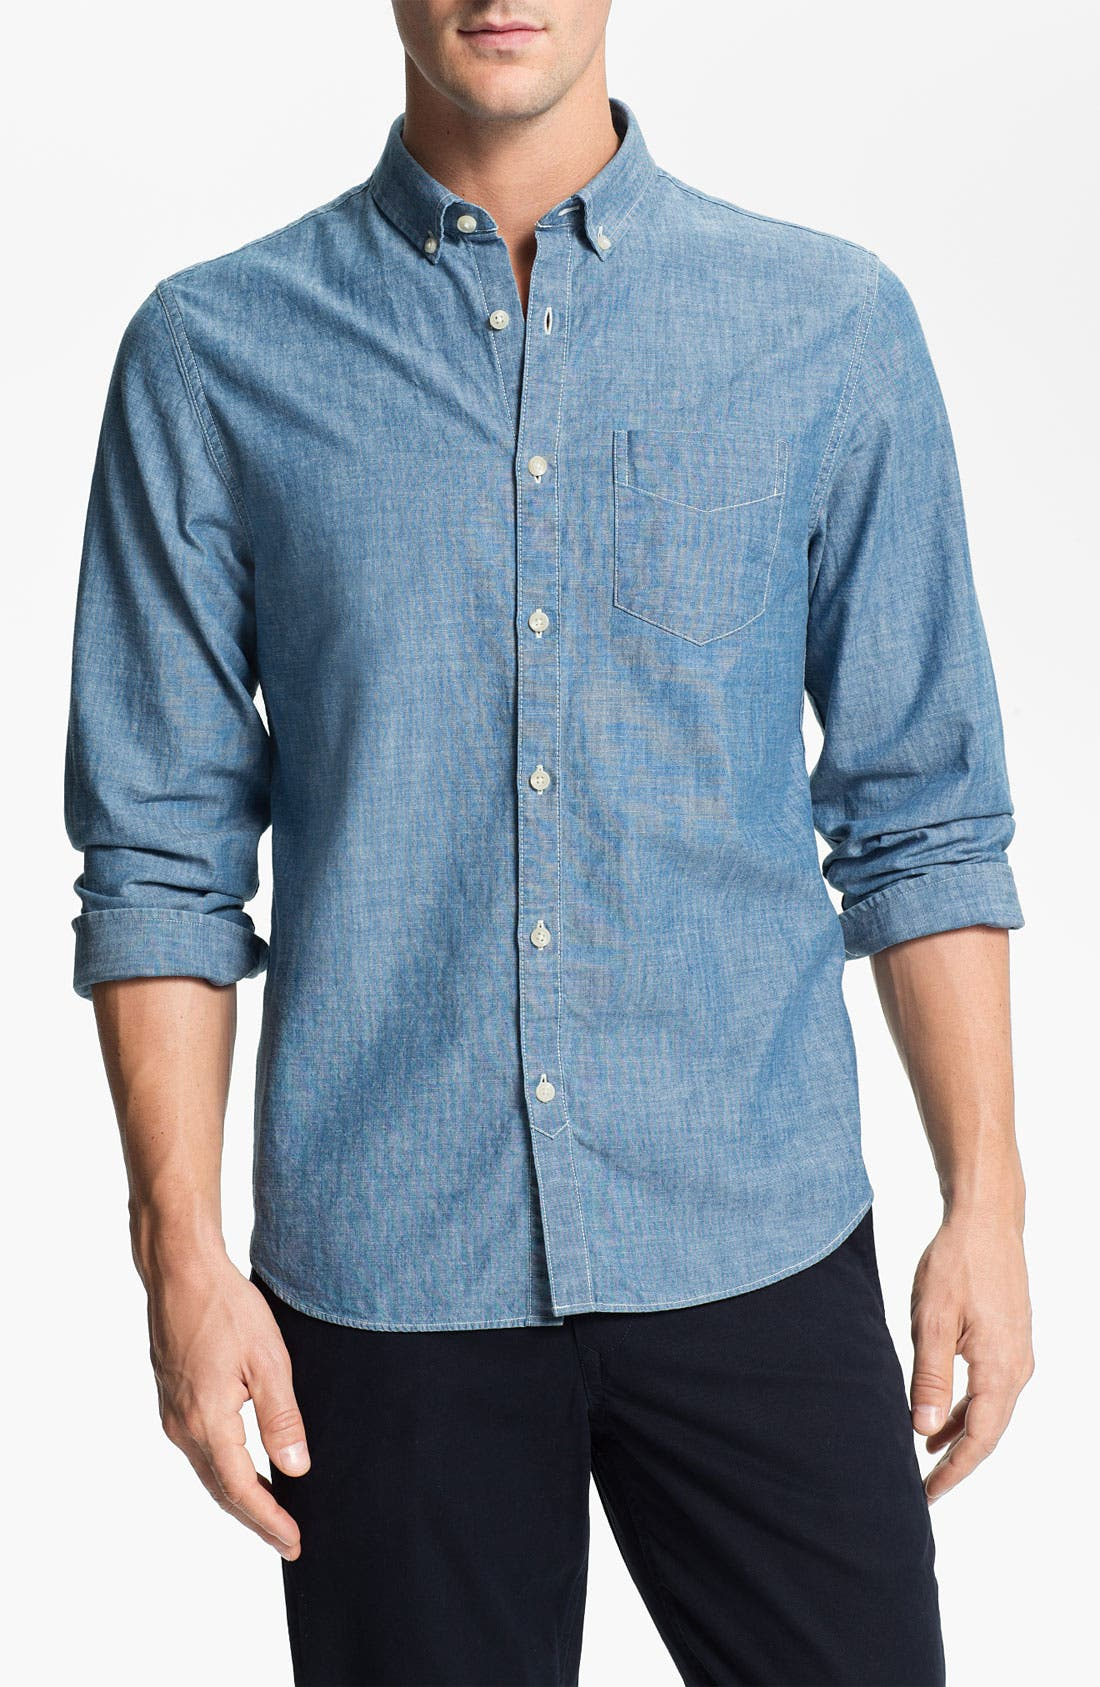 Alternate Image 1 Selected - Bonobos 'Fall River' Standard Fit Chambray Sport Shirt